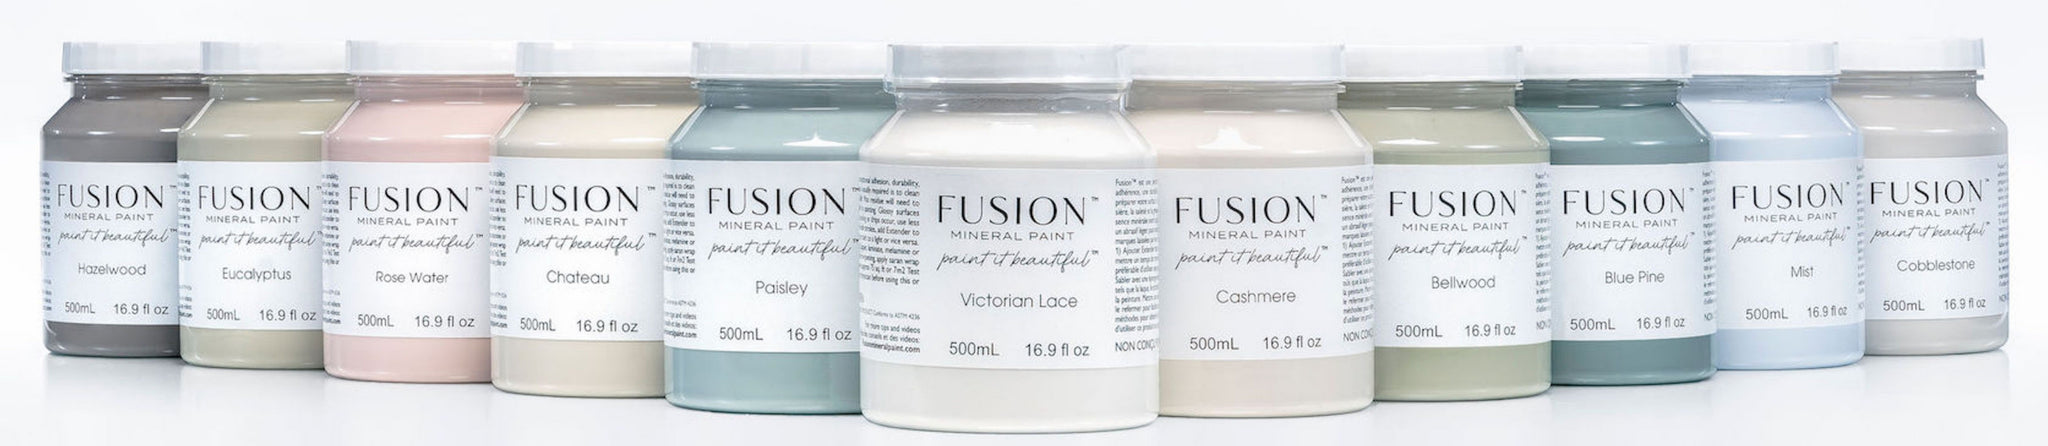 fusion-mineral-paint-new-colours-summer-2021-shabby-nook